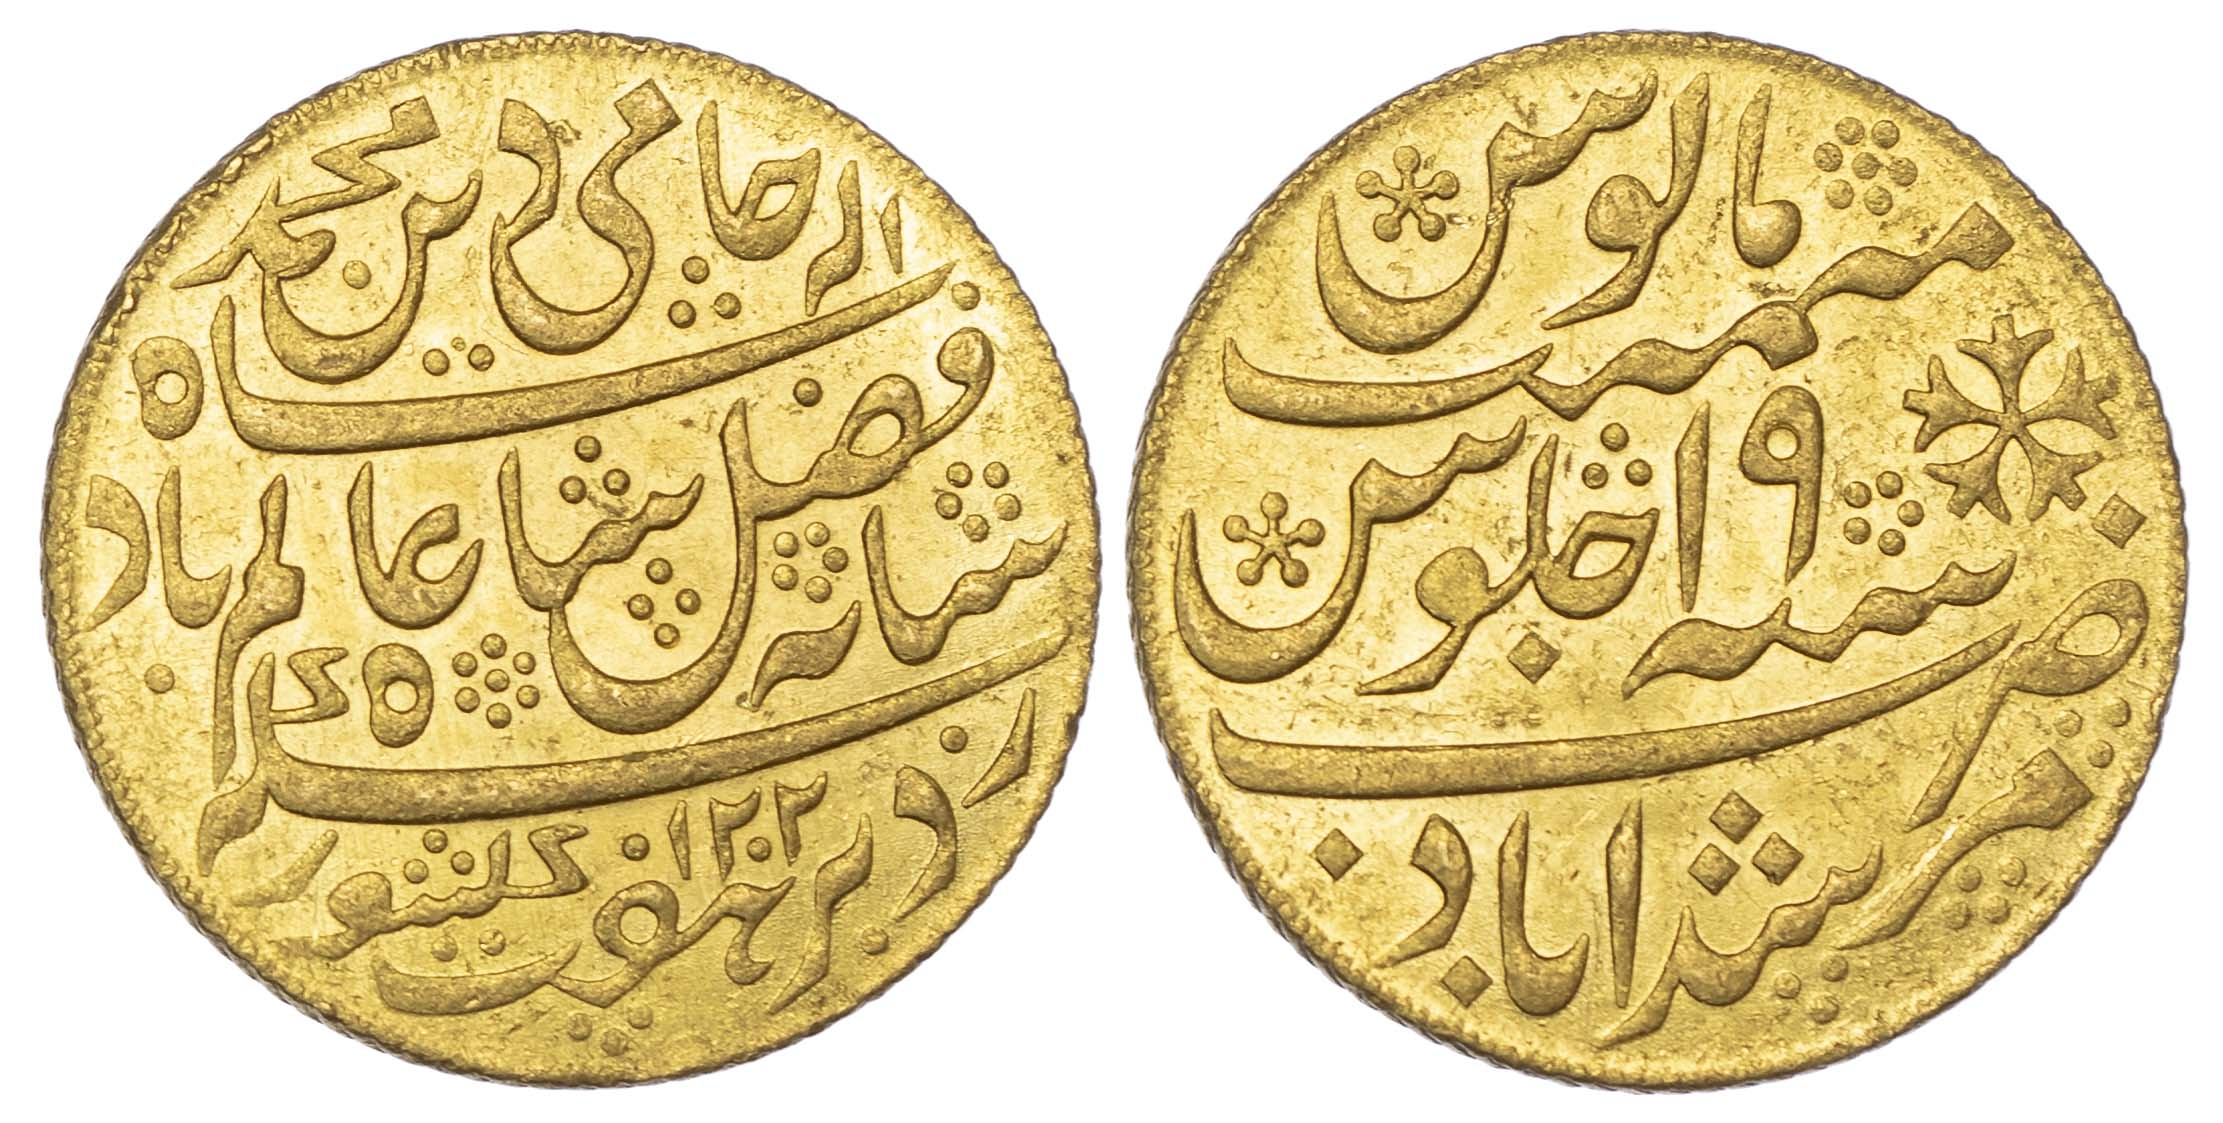 India, E.I.C., Bengal Presidency, Murshidabad (1825-1830), gold Mohur